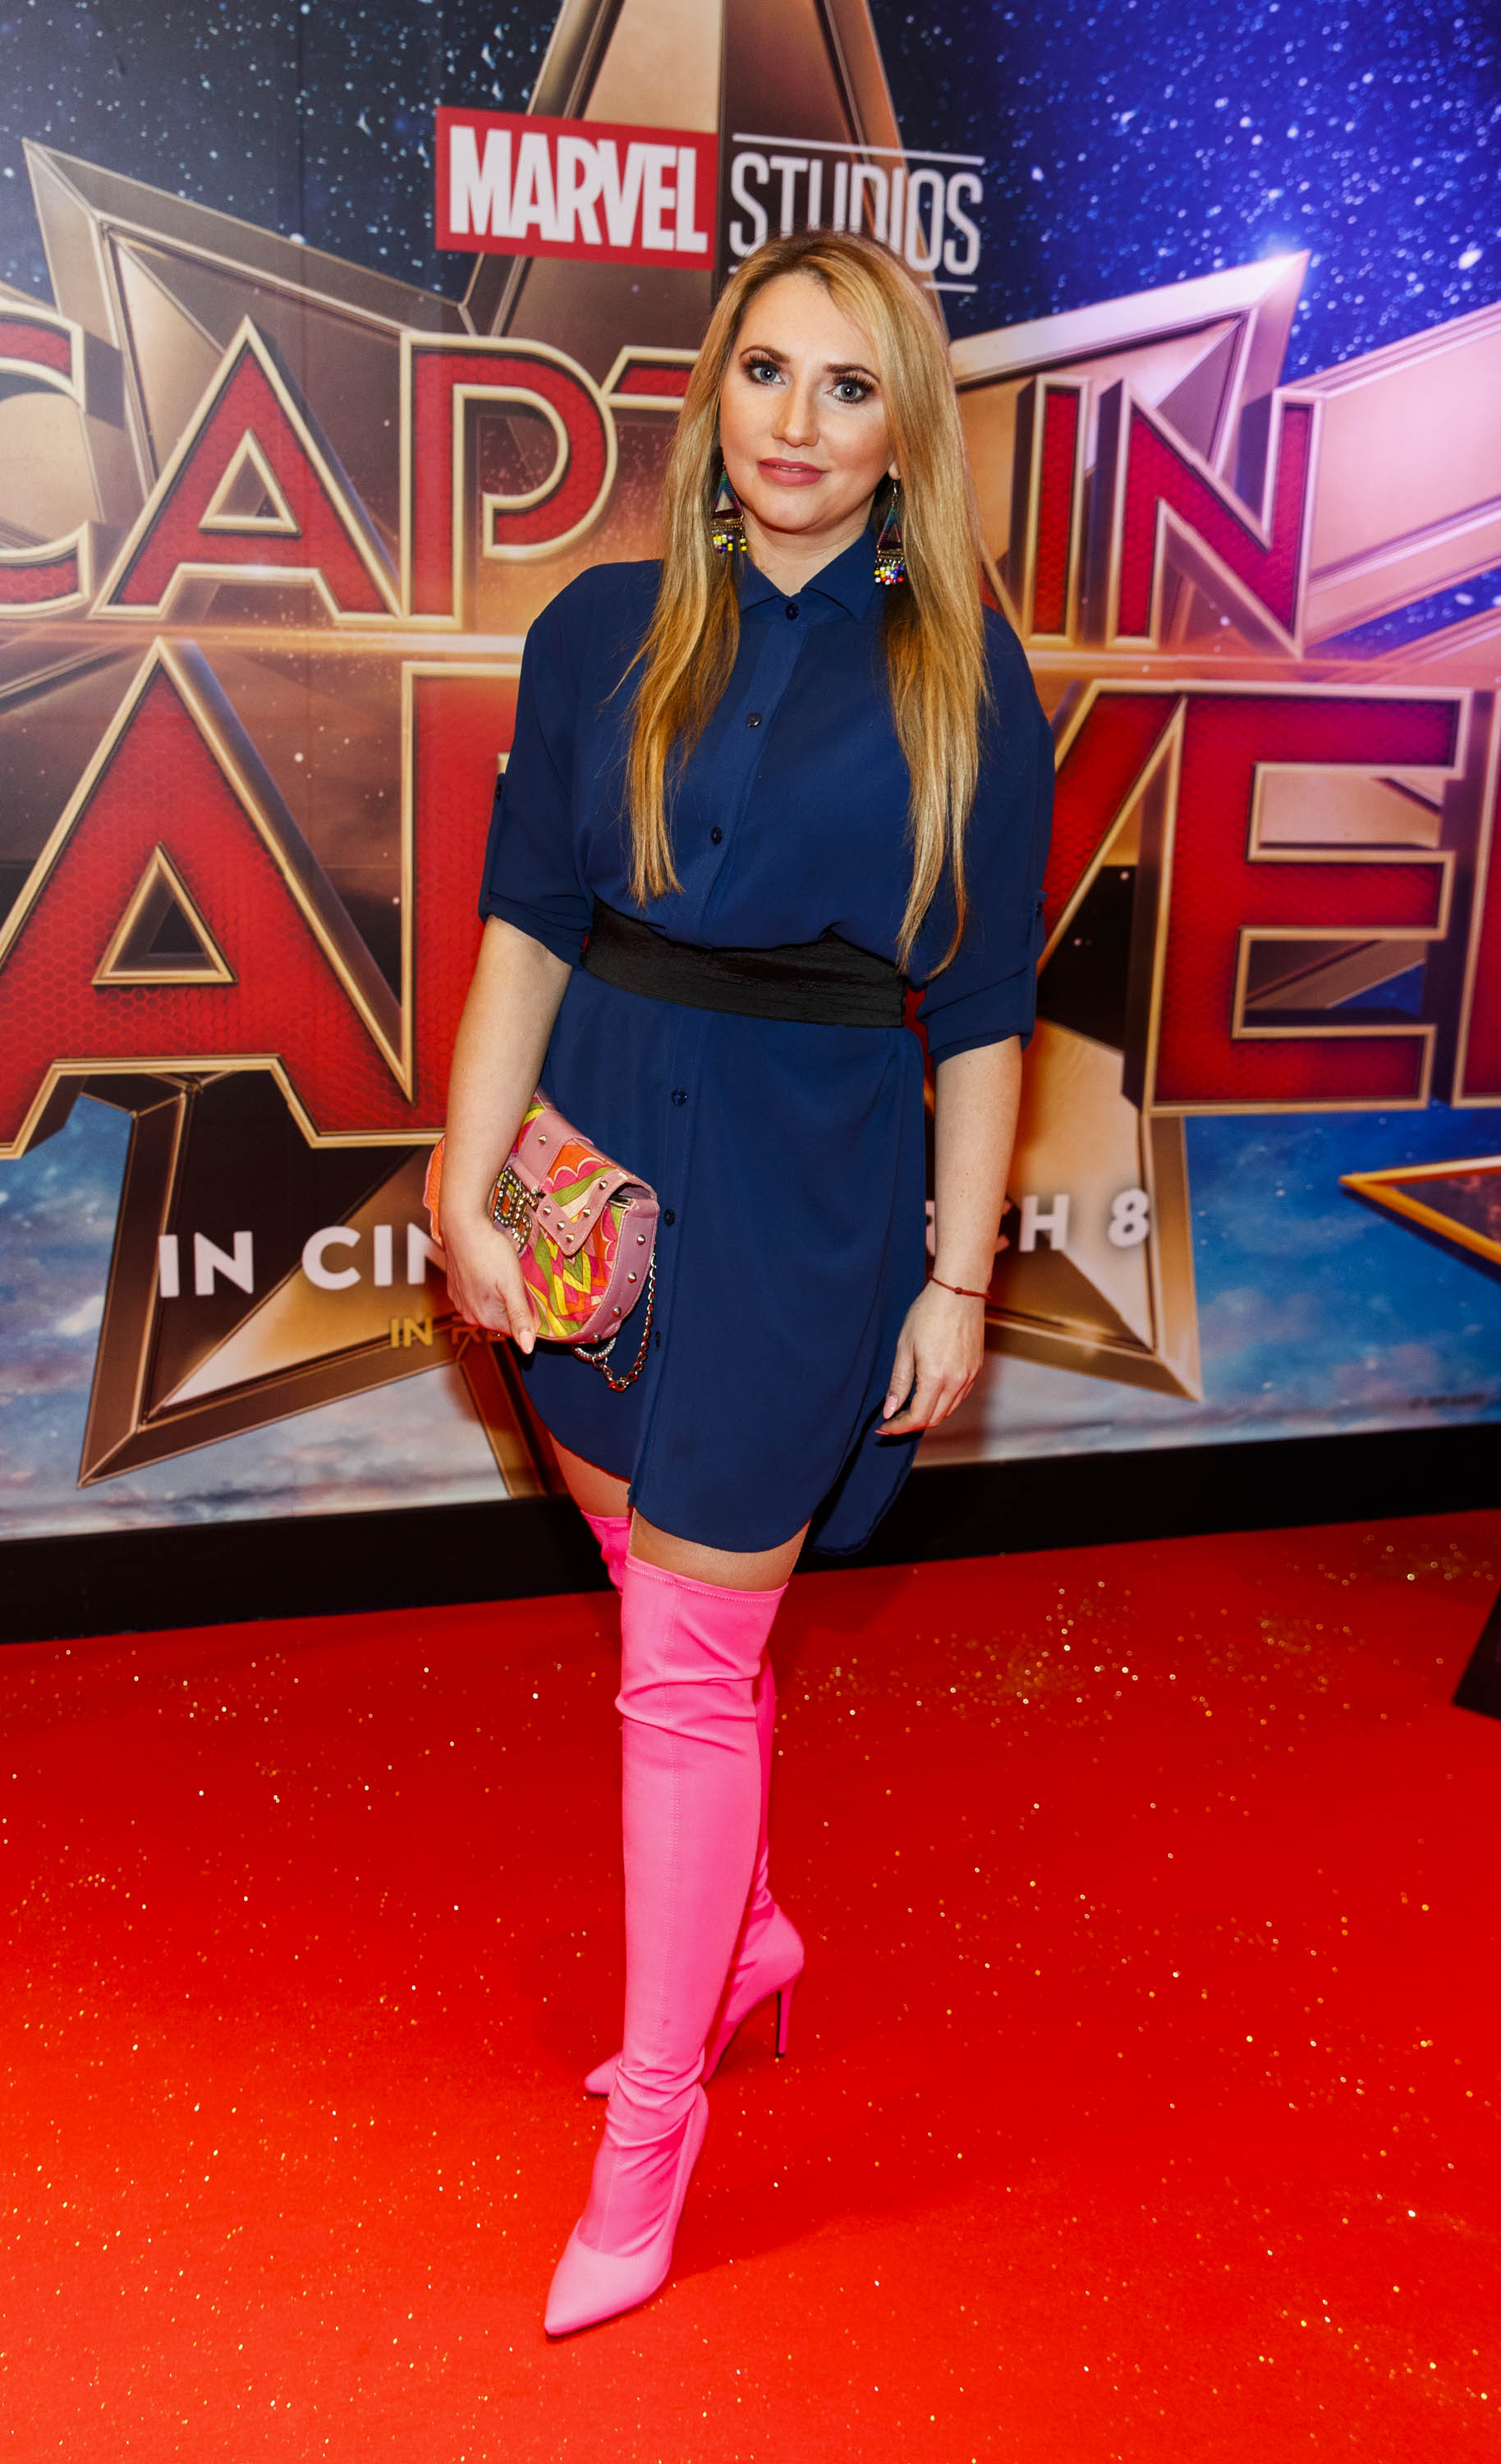 Monica Walsh pictured at a special preview screening of CAPTAIN MARVEL in Cineworld Dublin. Picture by: Andres Poveda